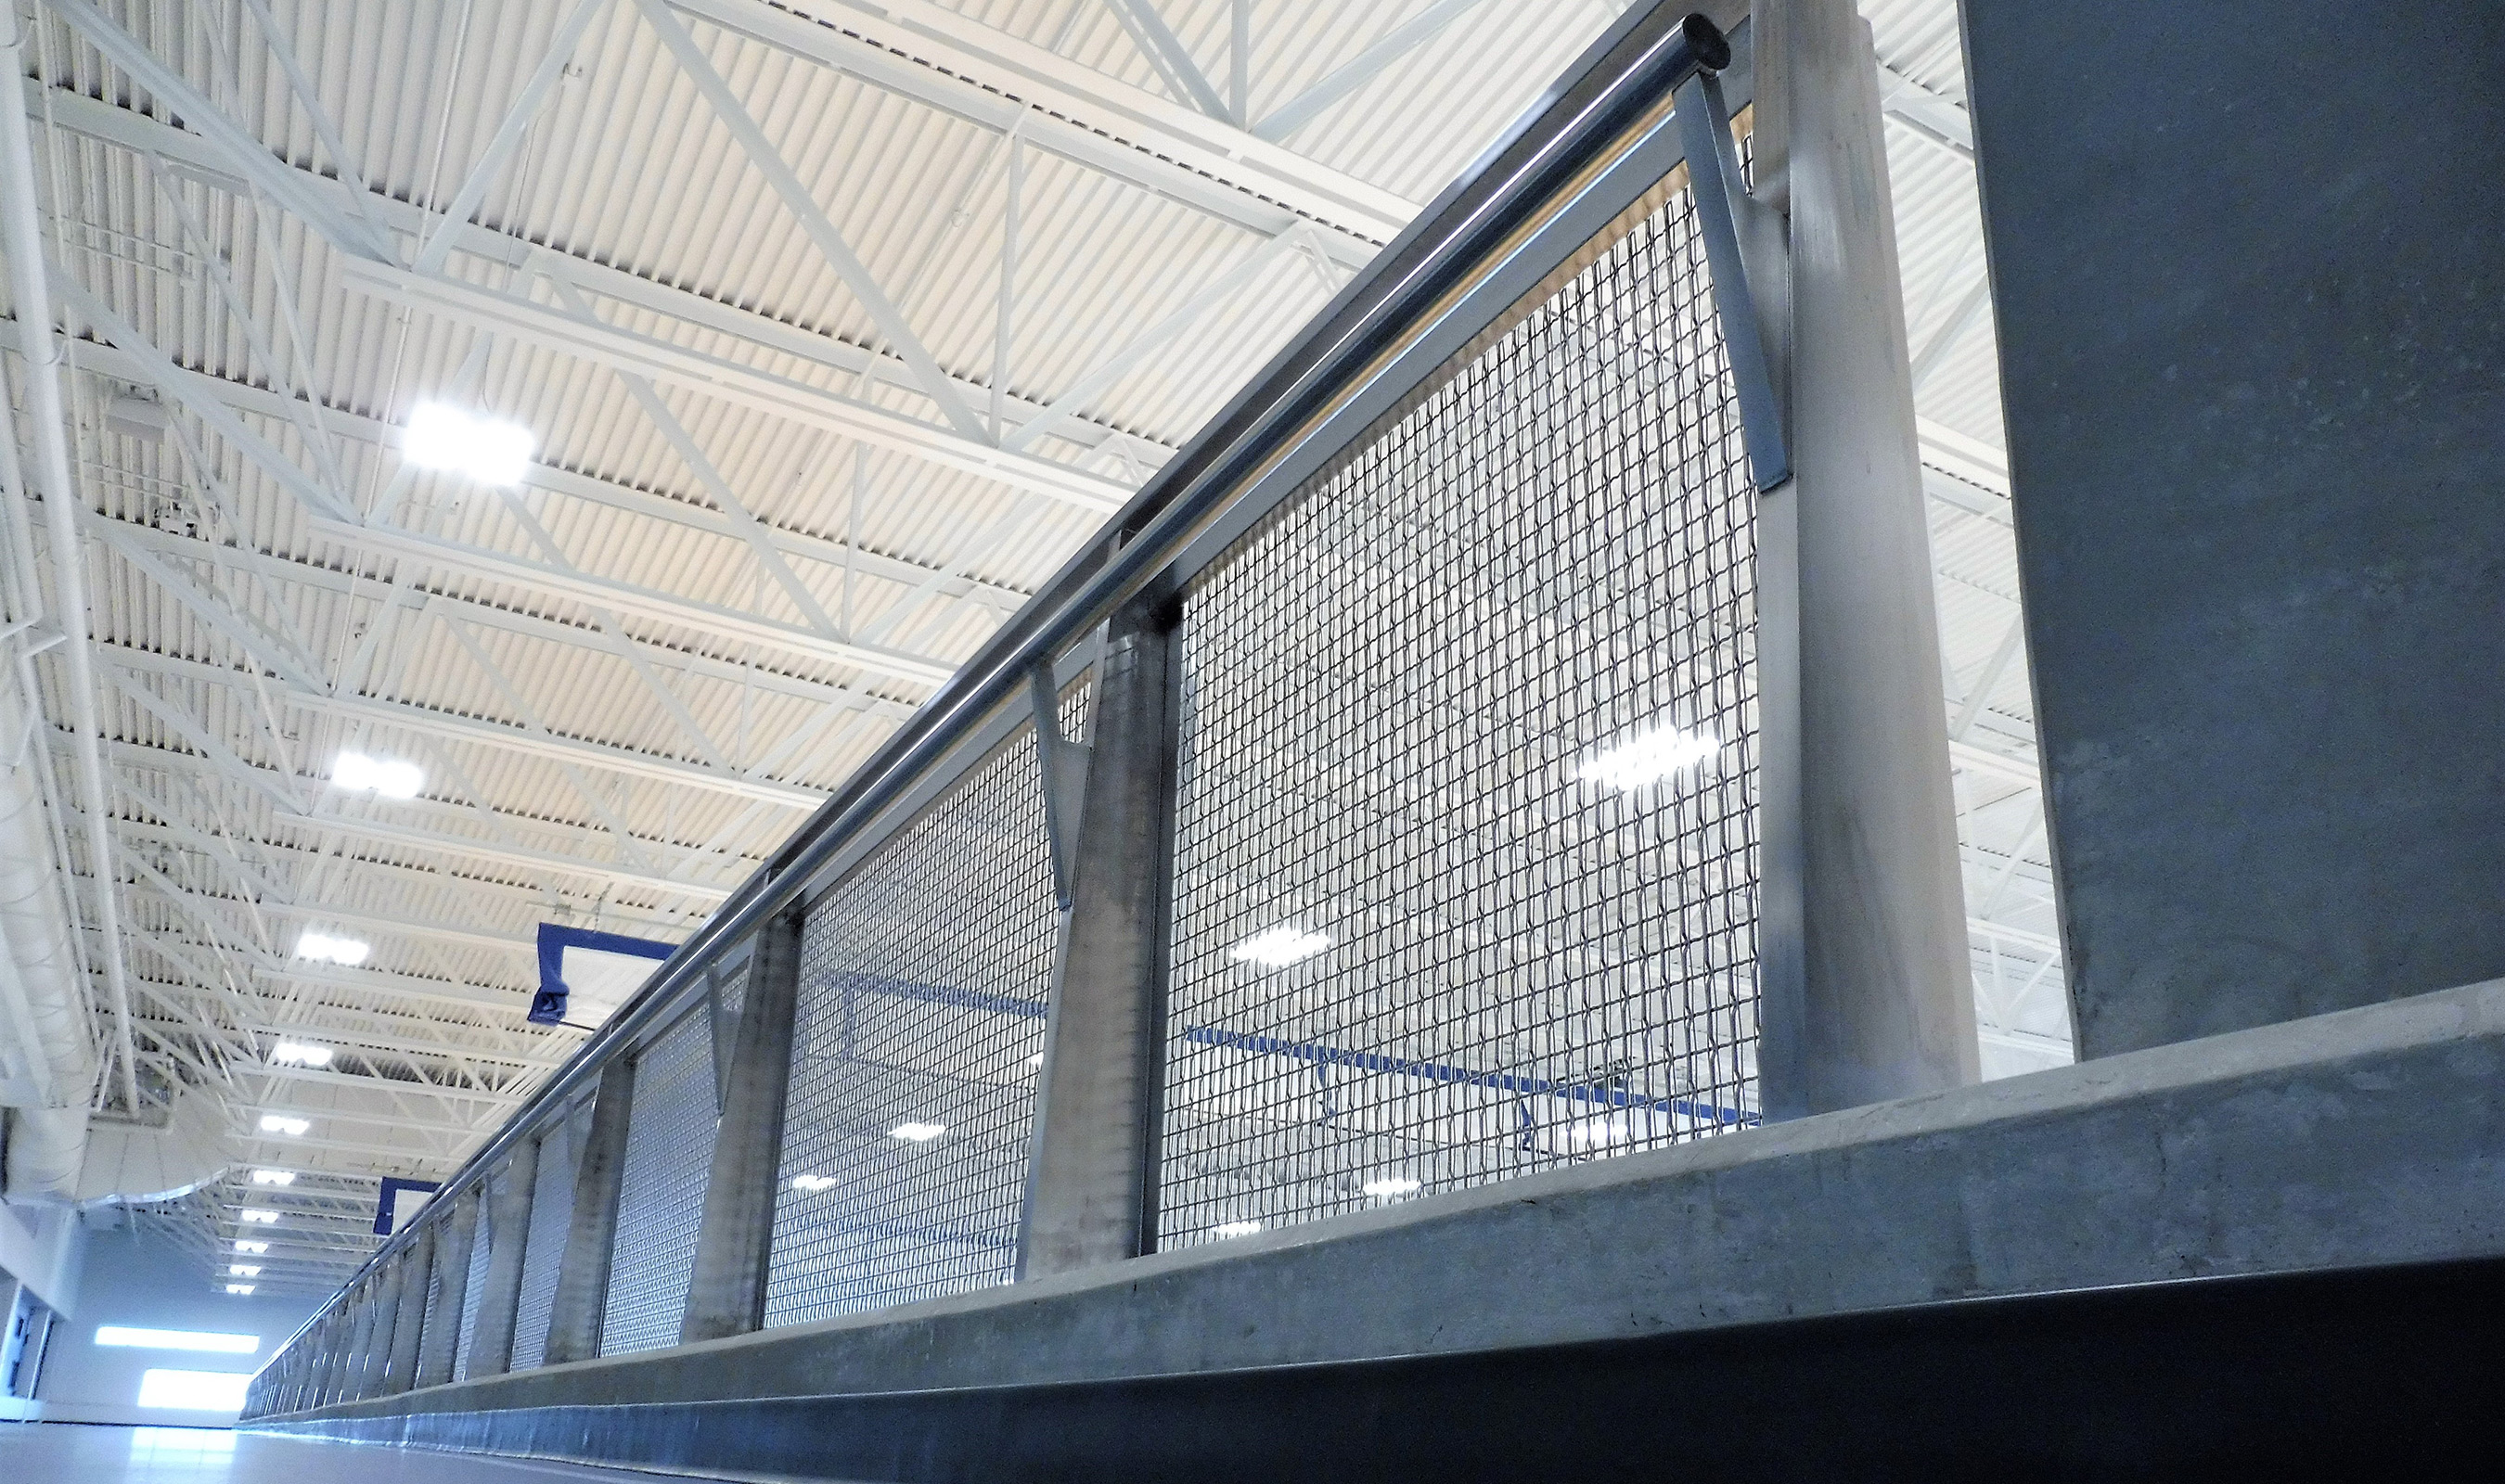 The light sparkles beautifully off of Banker Wire's SJD-7 woven wire mesh as railing infill.